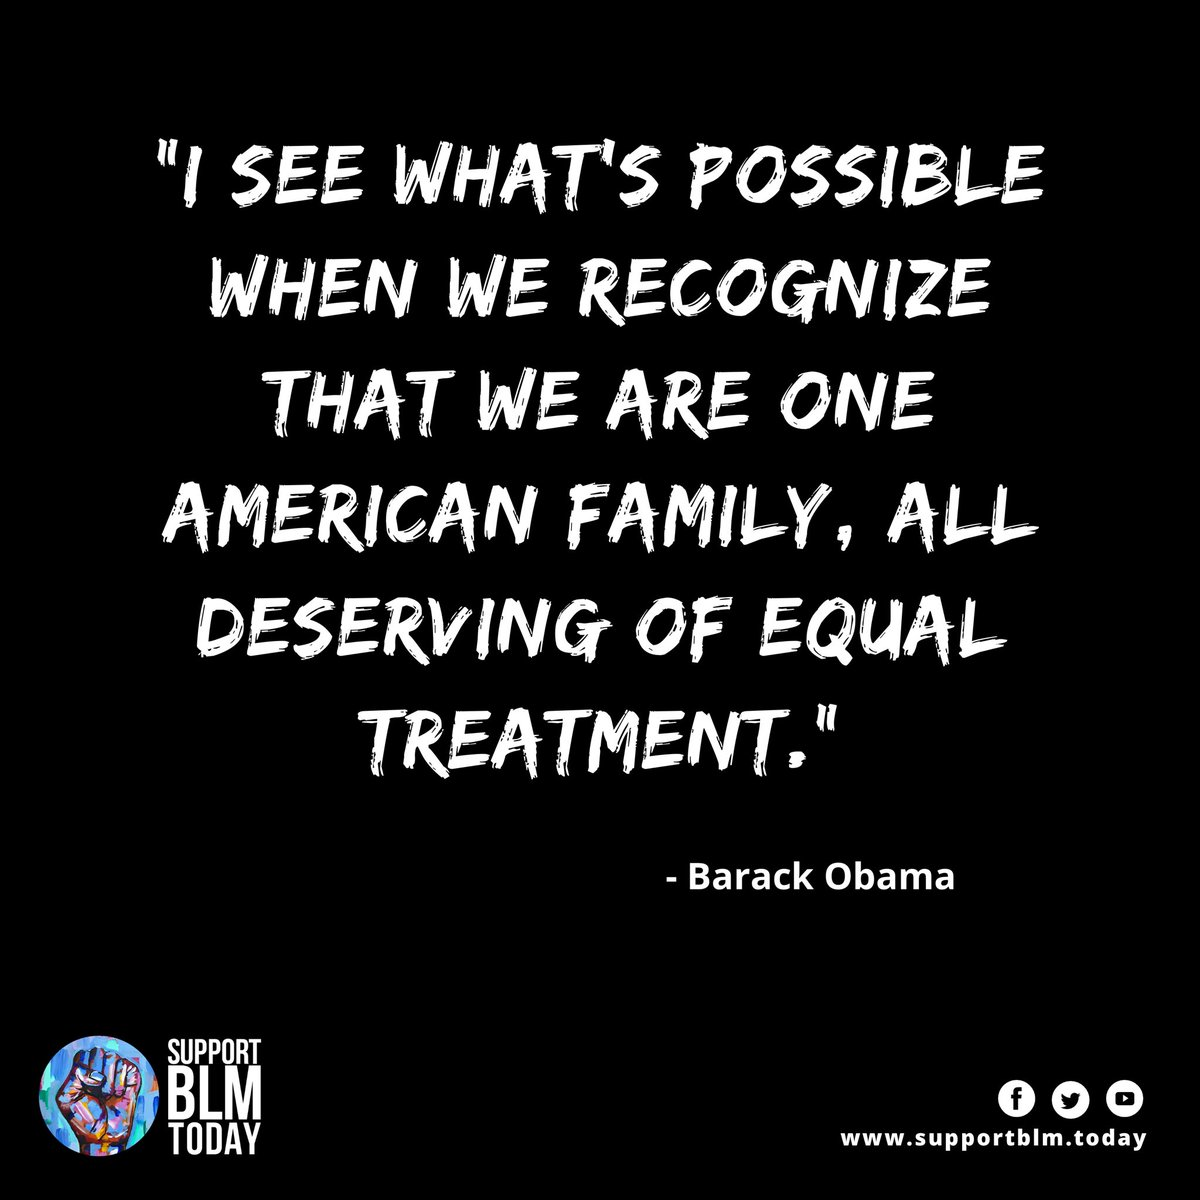 All deserving of equal treatment    #blacklivesmatter #blmquotes #blm #blm2021 #equality #racism #solidarity #blacklives #mlk #blmmovement #nojusticenopeace #blacklivesmatterplaza #blmprotest #blmfist